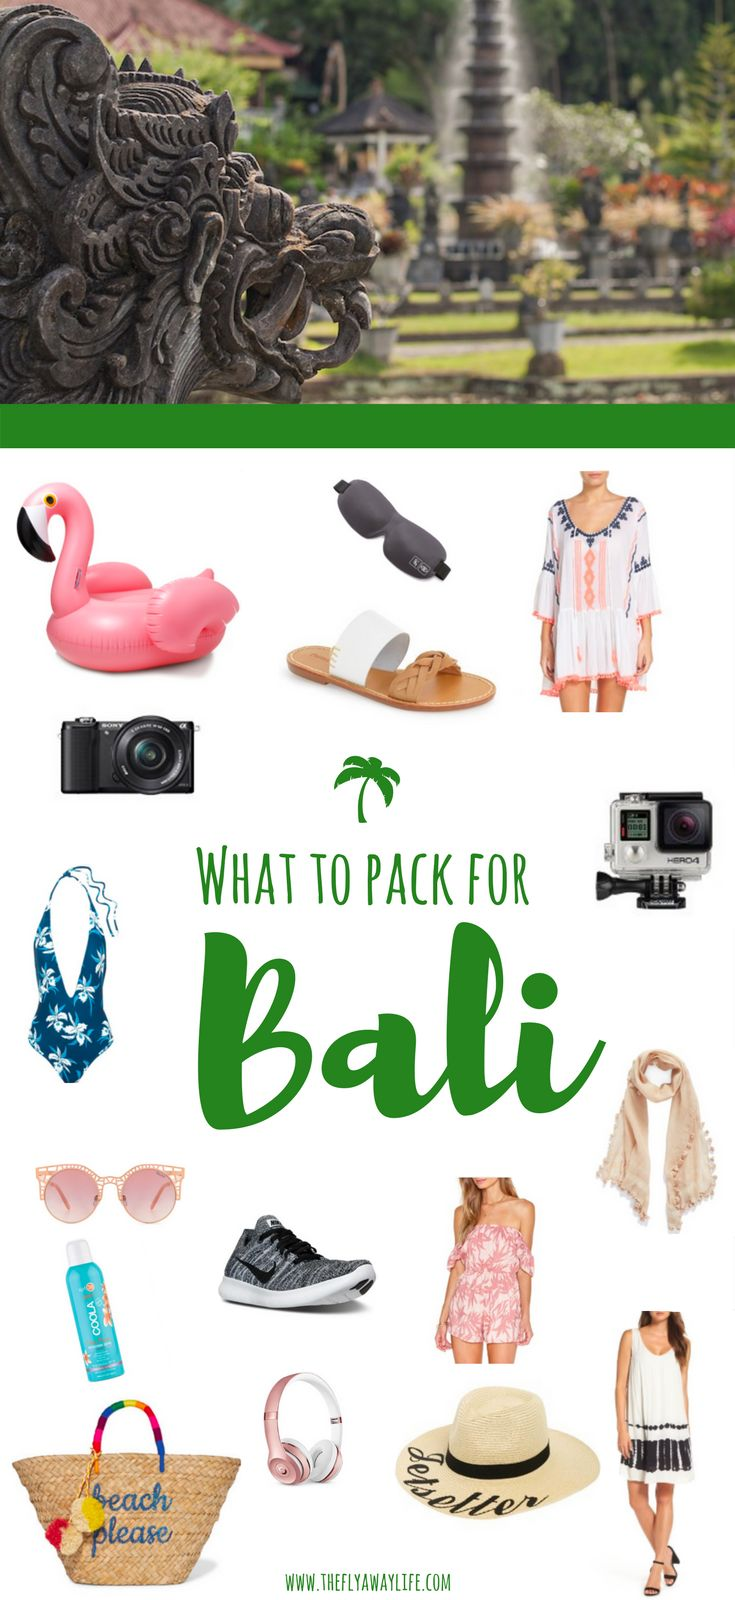 What to Pack for Bali: Best Bali Packing Guide